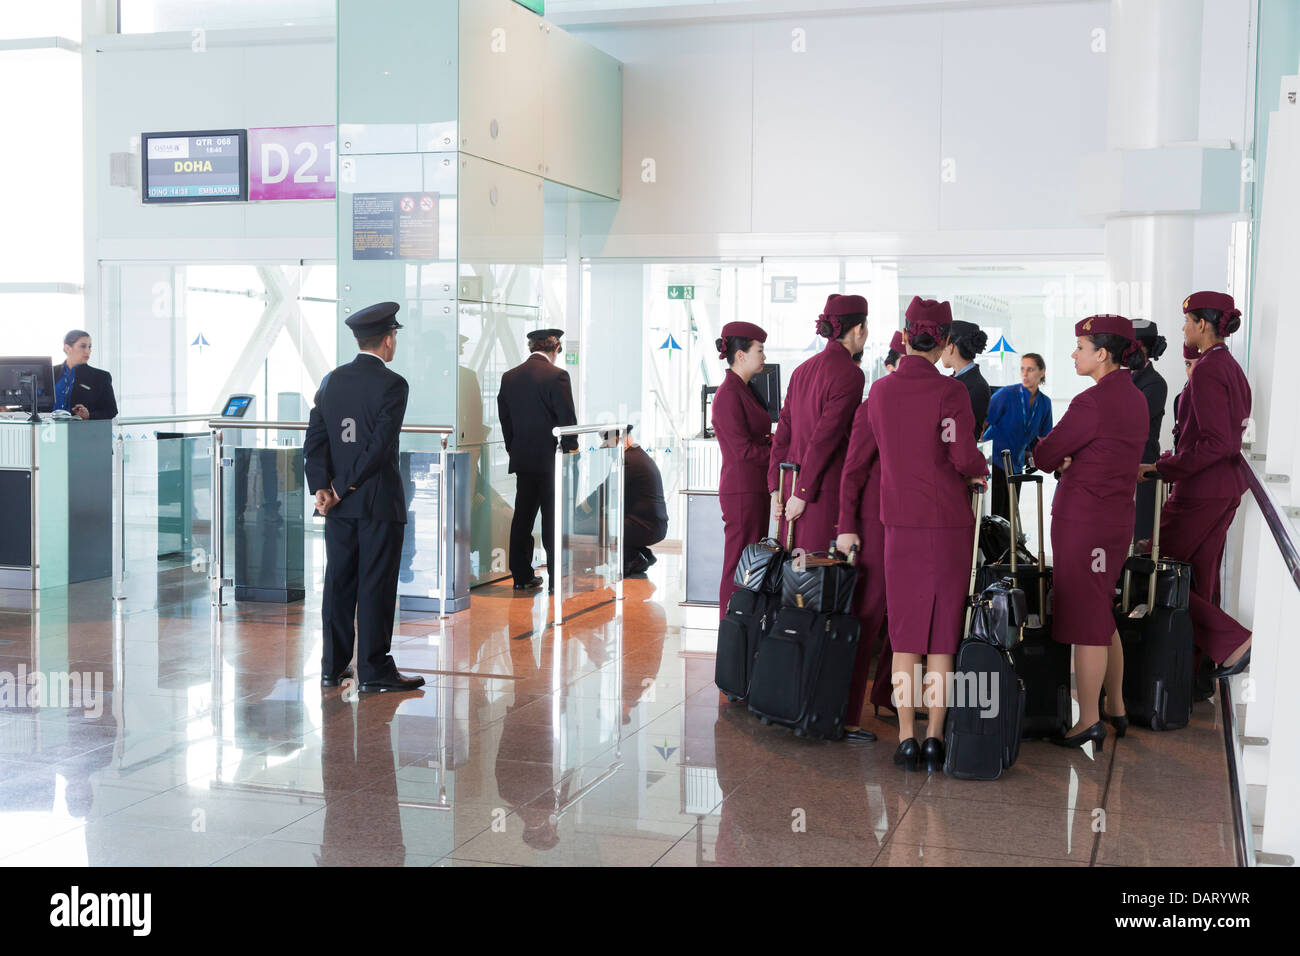 Qatar airways pilots and cabin staff waiting at airport departure gate. - Stock Image